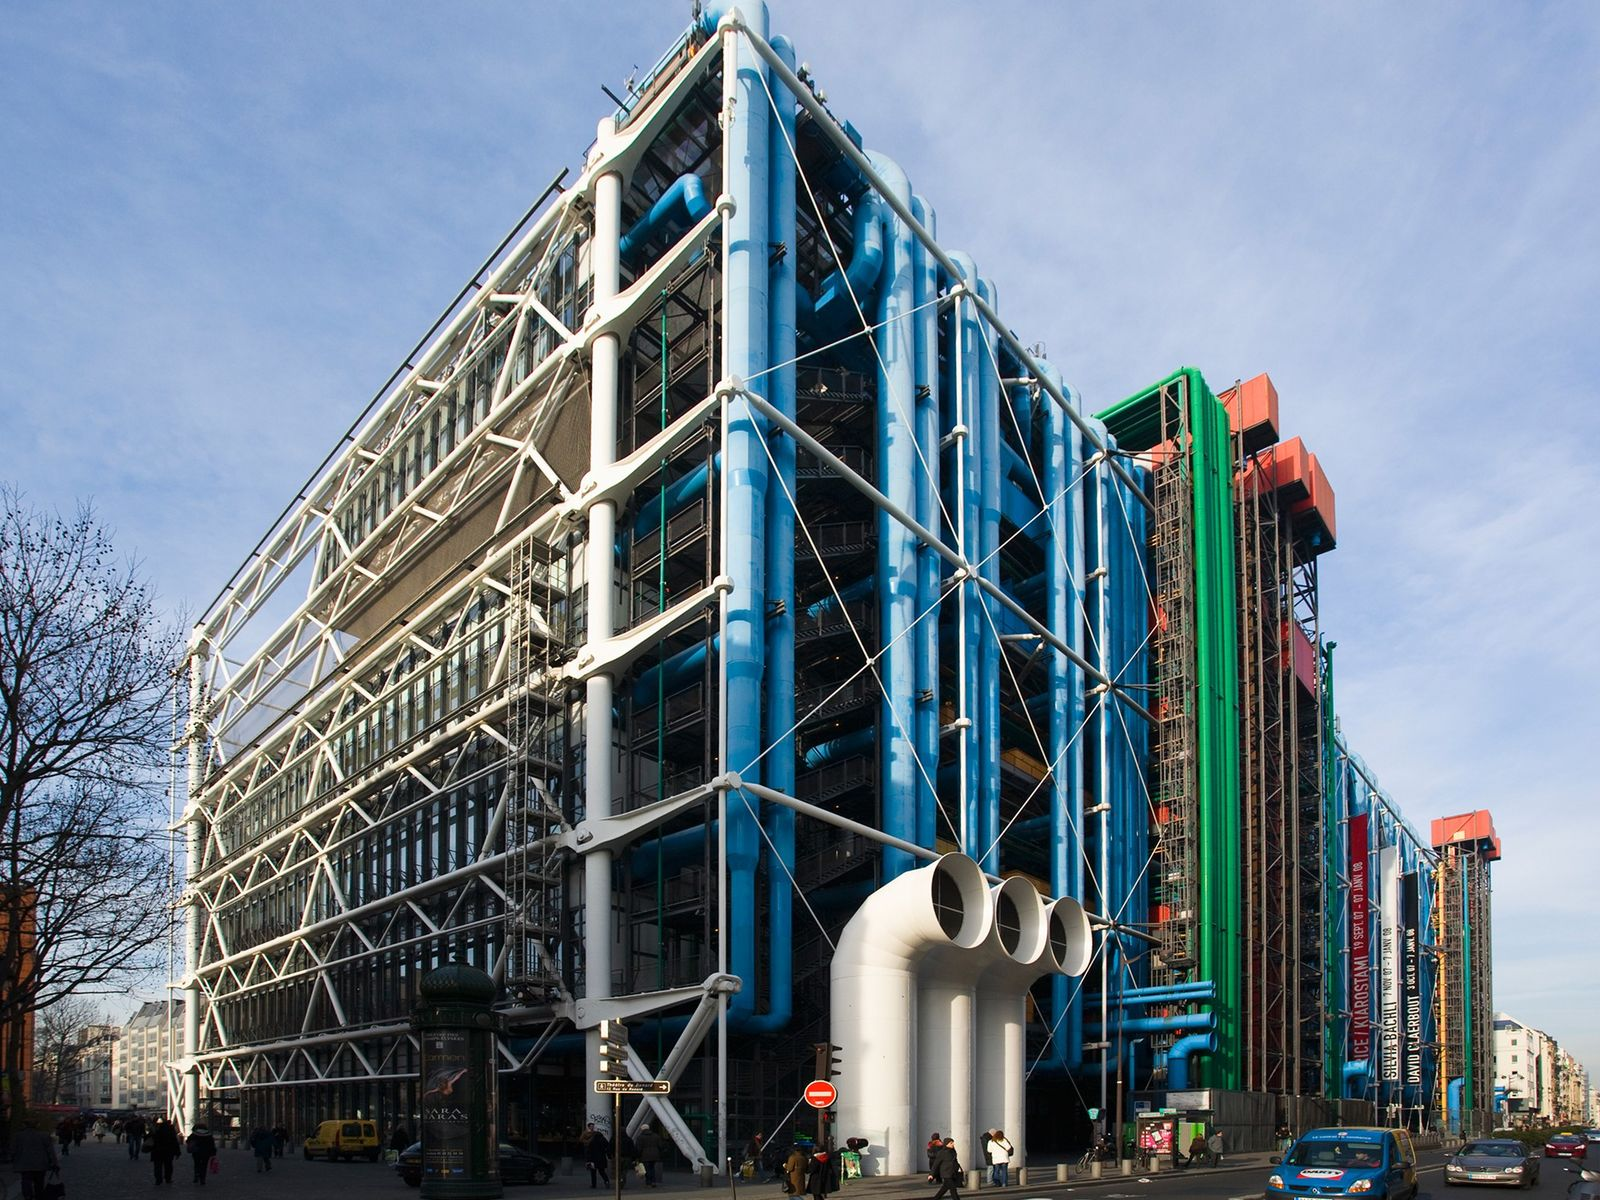 Georges Pompidou Center  paris Paris Design Guide: The Best Places to Celebrate Design 2c980fa2 dece 4f27 81b6 57d2bb01f8df desktop